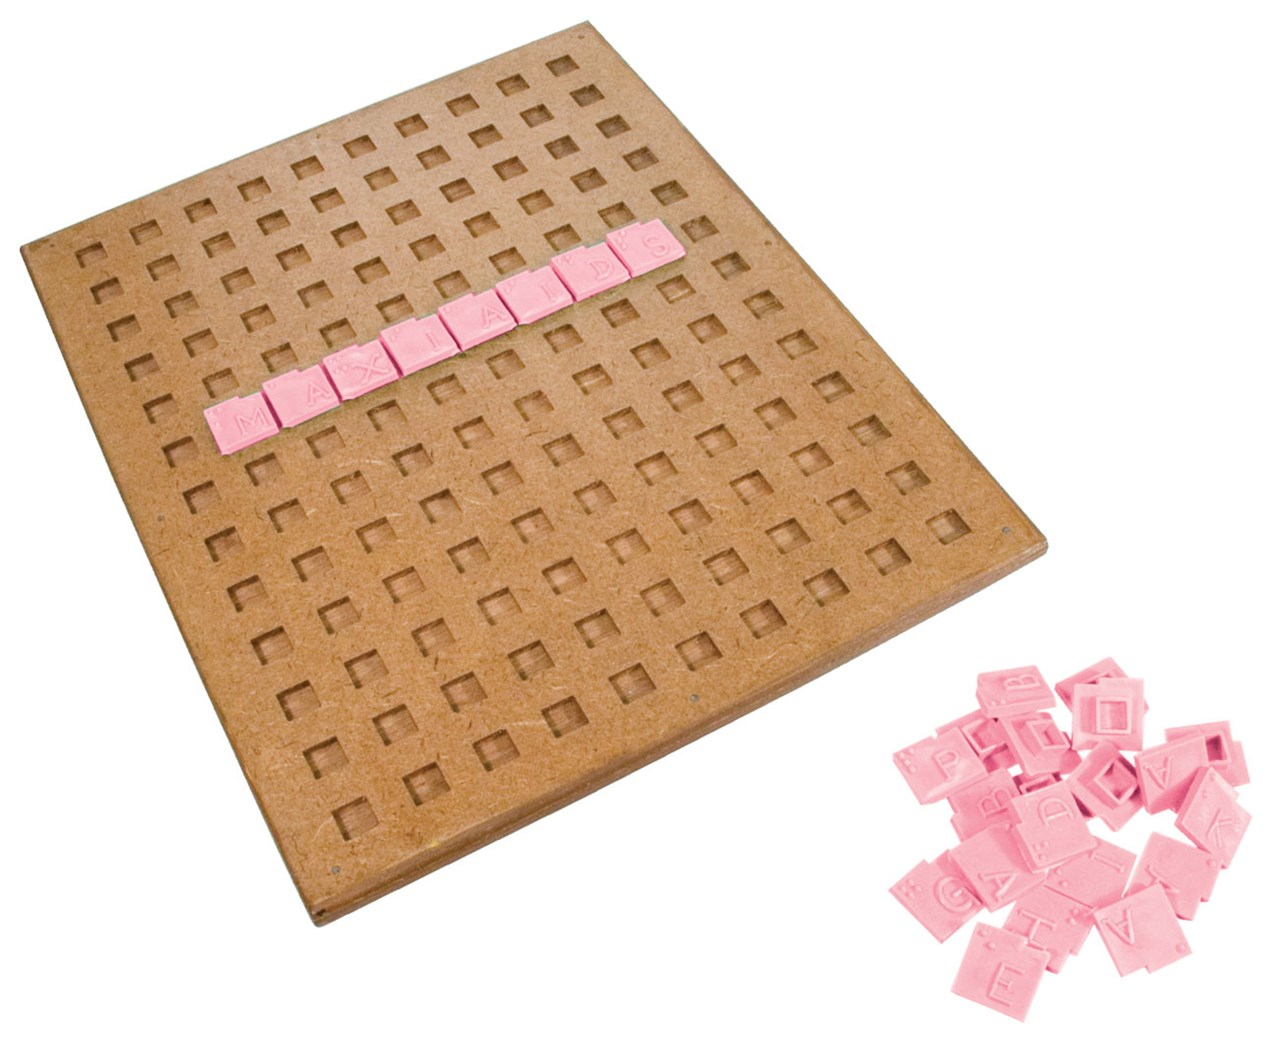 Tactile Braille Crossword Puzzle Game